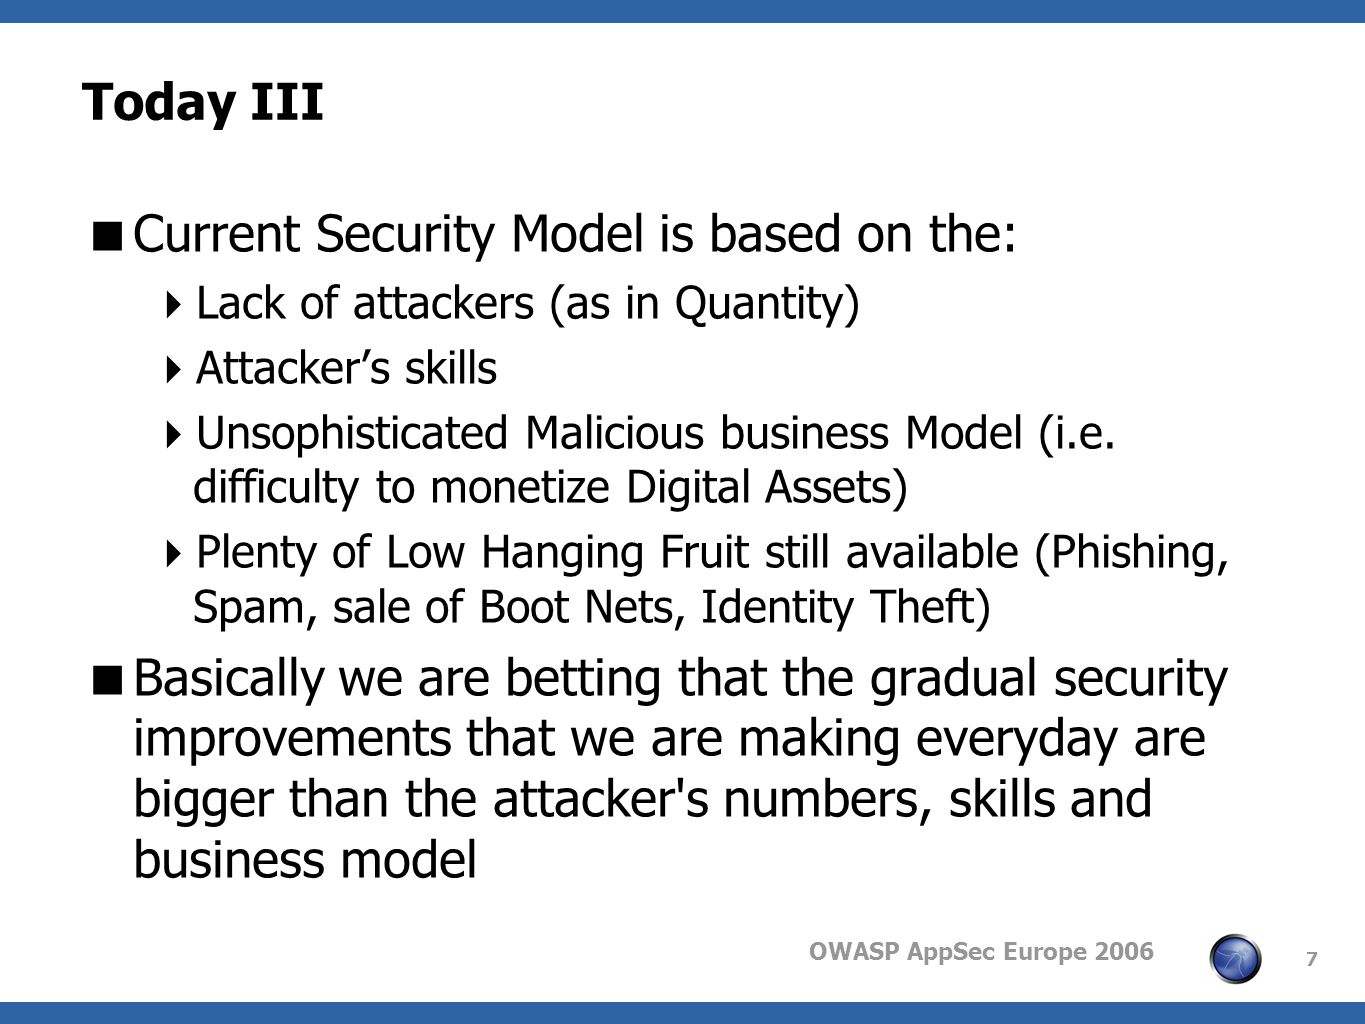 OWASP AppSec Europe 2006 7 Today III Current Security Model is based on the: Lack of attackers (as in Quantity) Attackers skills Unsophisticated Malicious business Model (i.e.